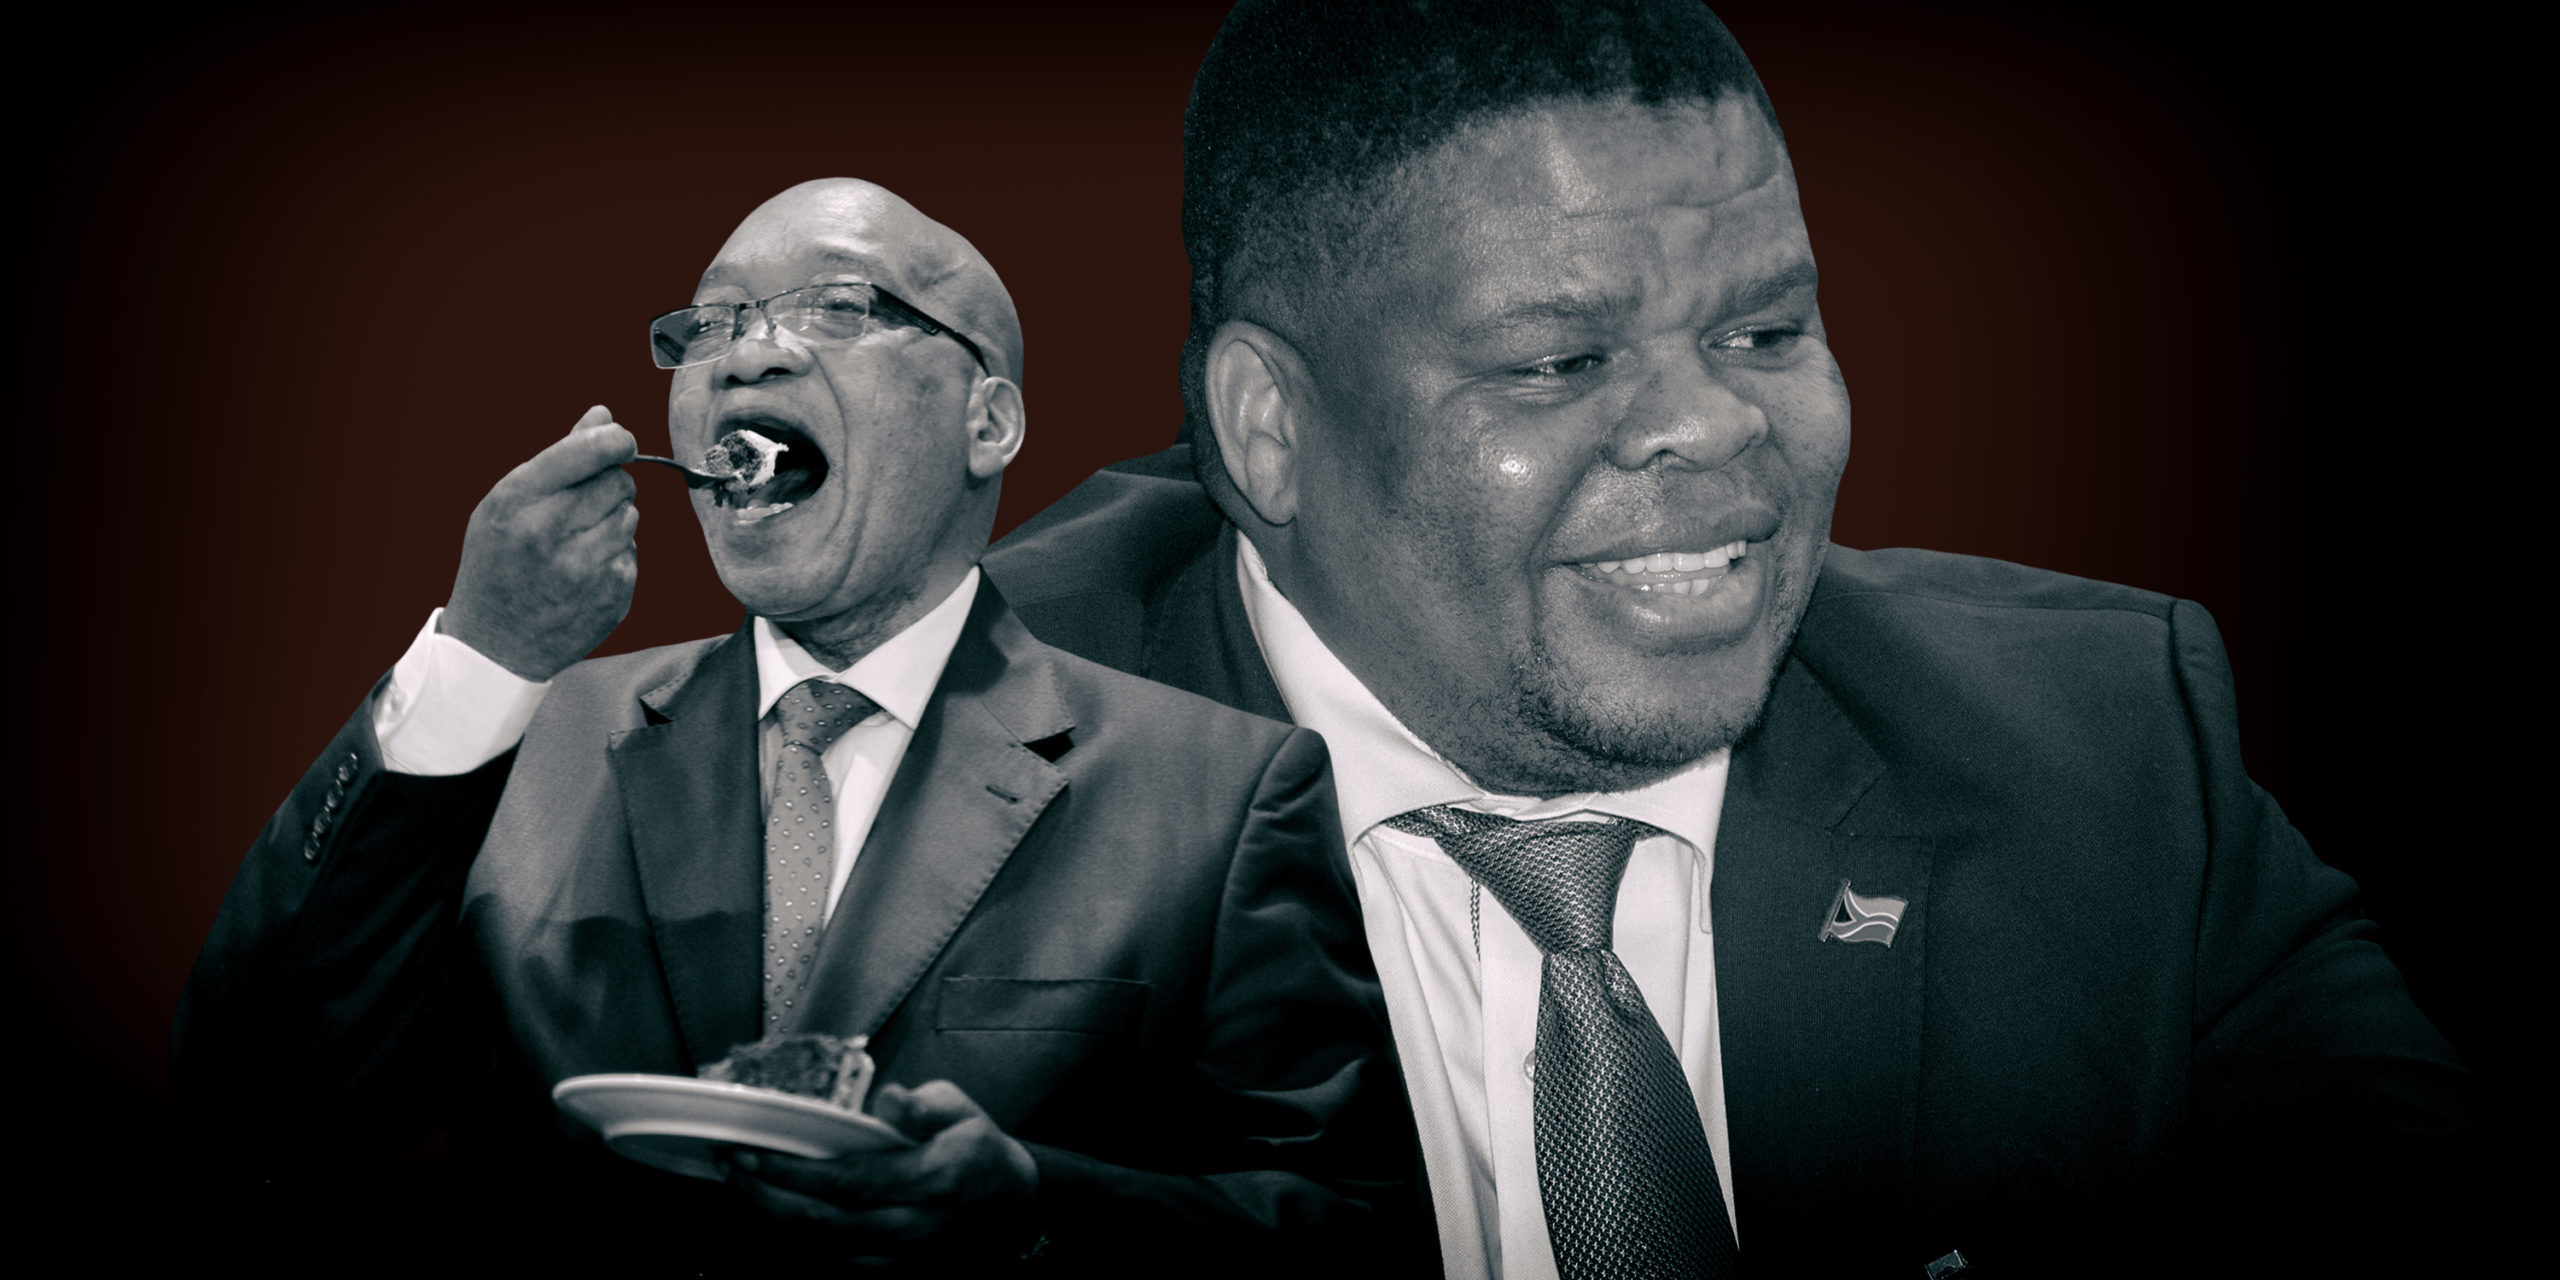 Secret billions poured into State Security Agency to sustain and protect 'Zuma regime', claims Acting DG Loyiso Jafta - Daily Maverick